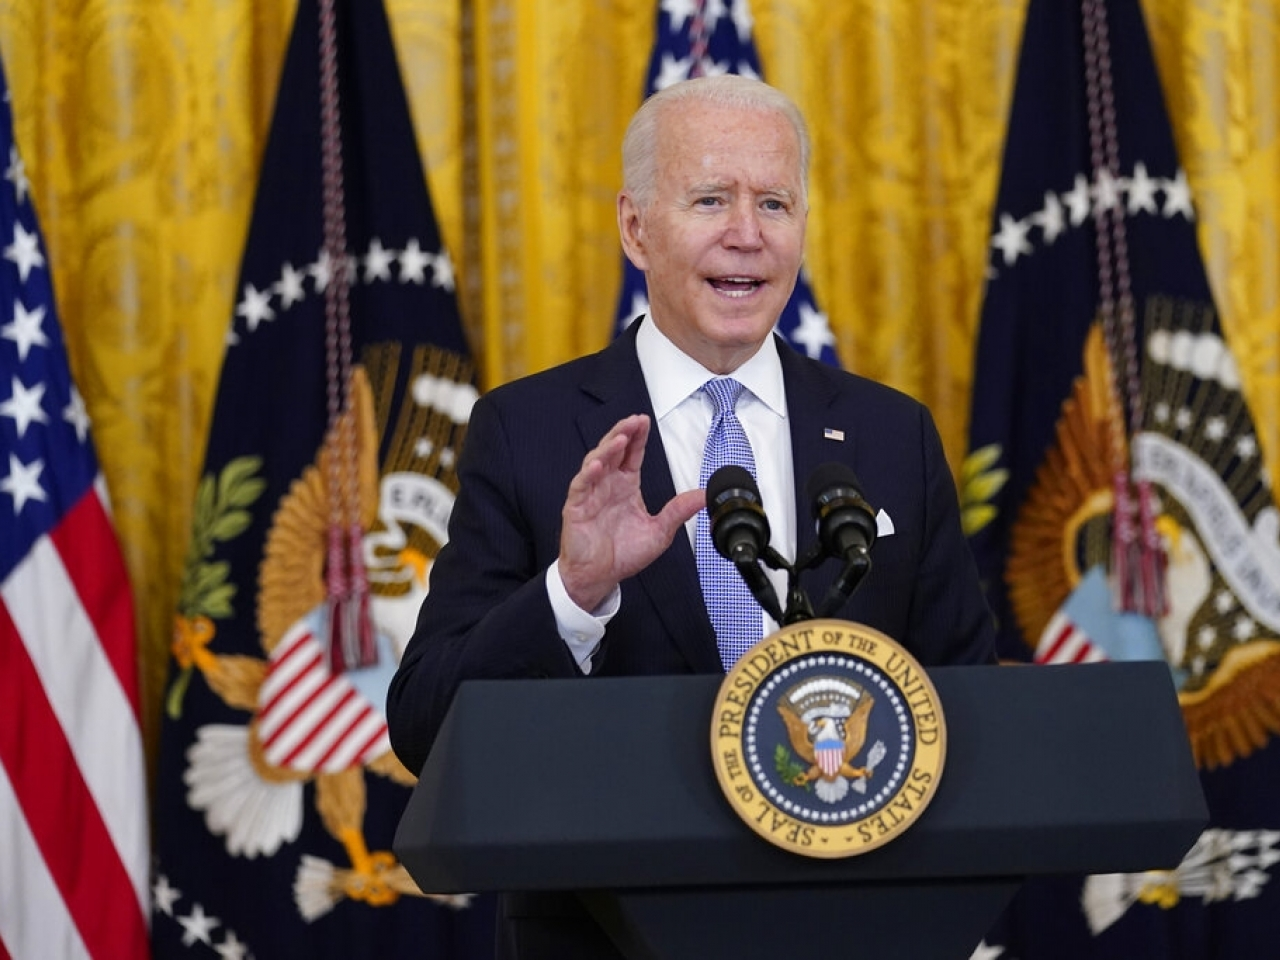 Joe Biden prepares to announce new vaccination rules for US government workers. Photo: AP